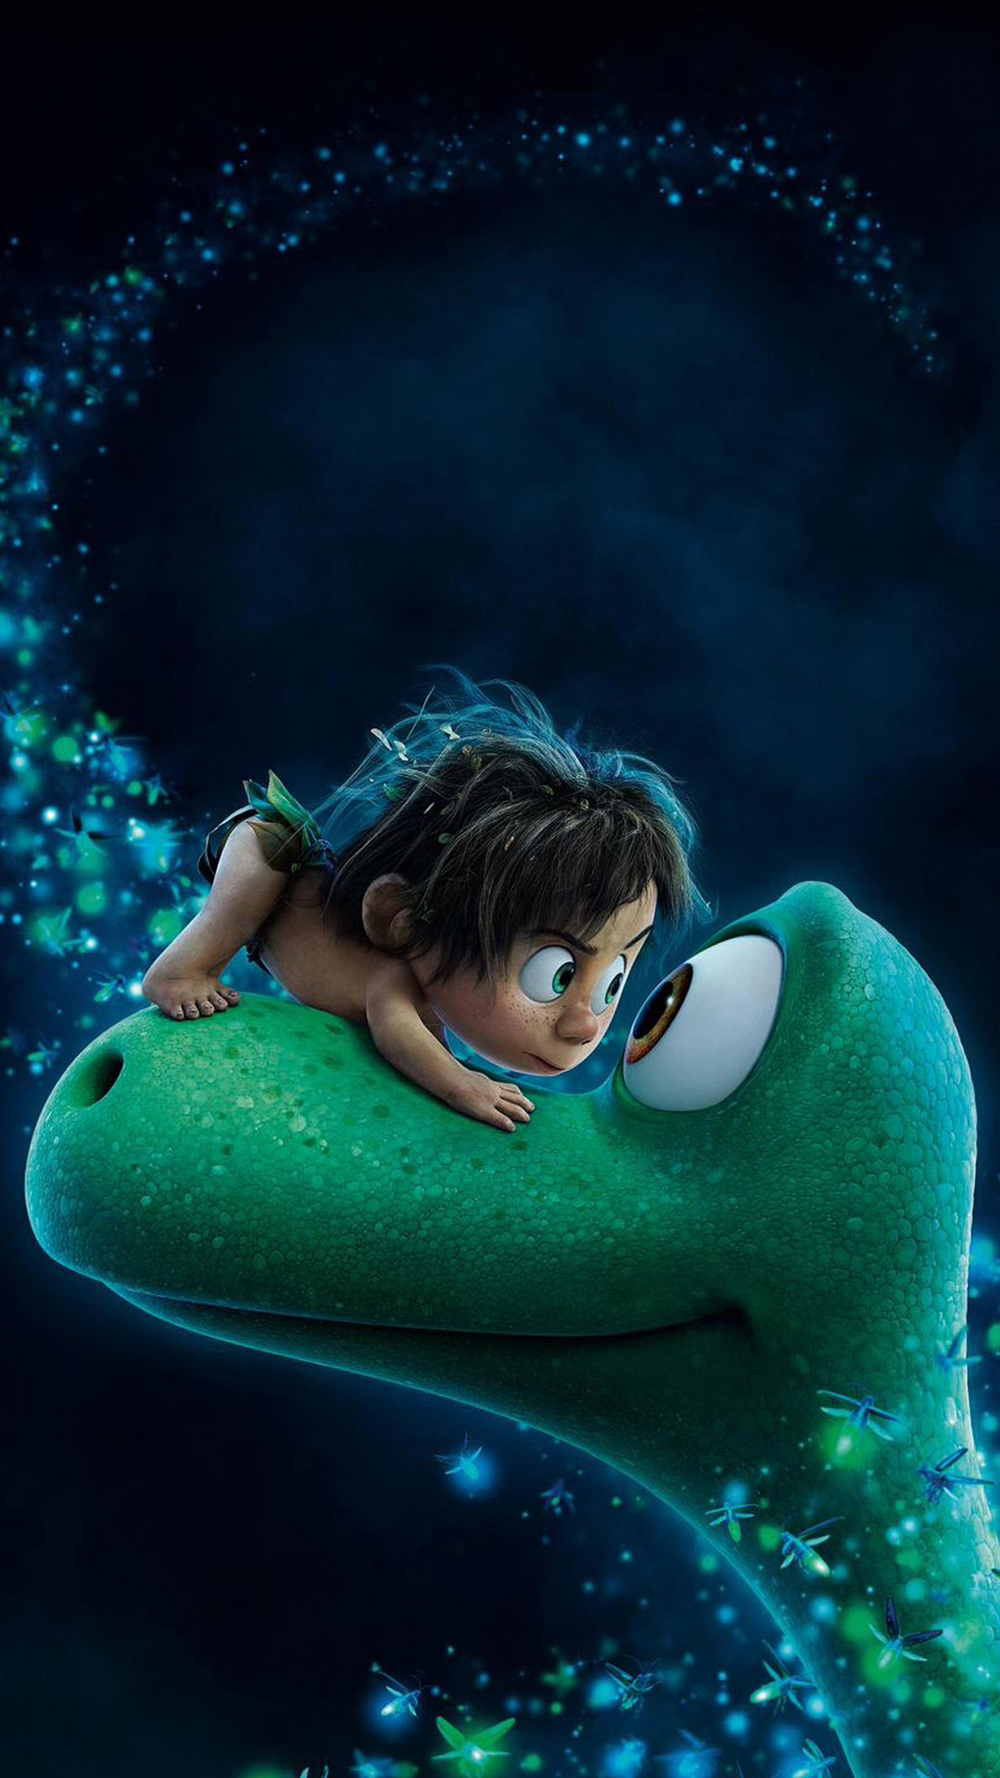 The Good Dinosaur Downloadable Wallpaper For Ios Android Phones